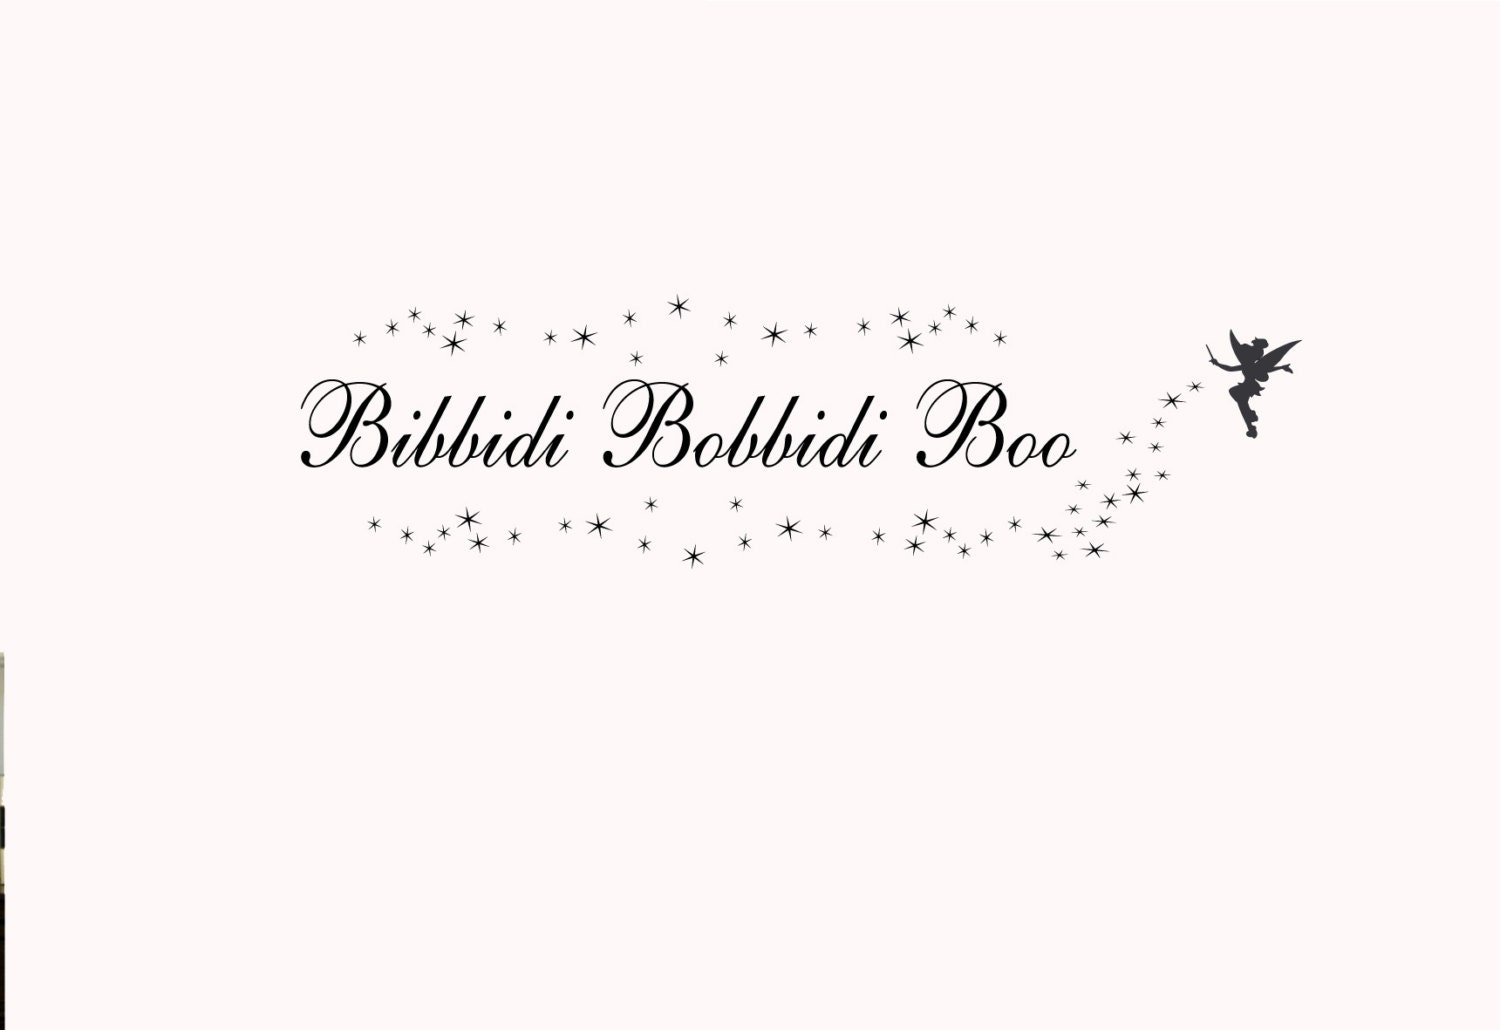 Bibbidi Bobbidi Boo Wall Decal Princess Decor With Star